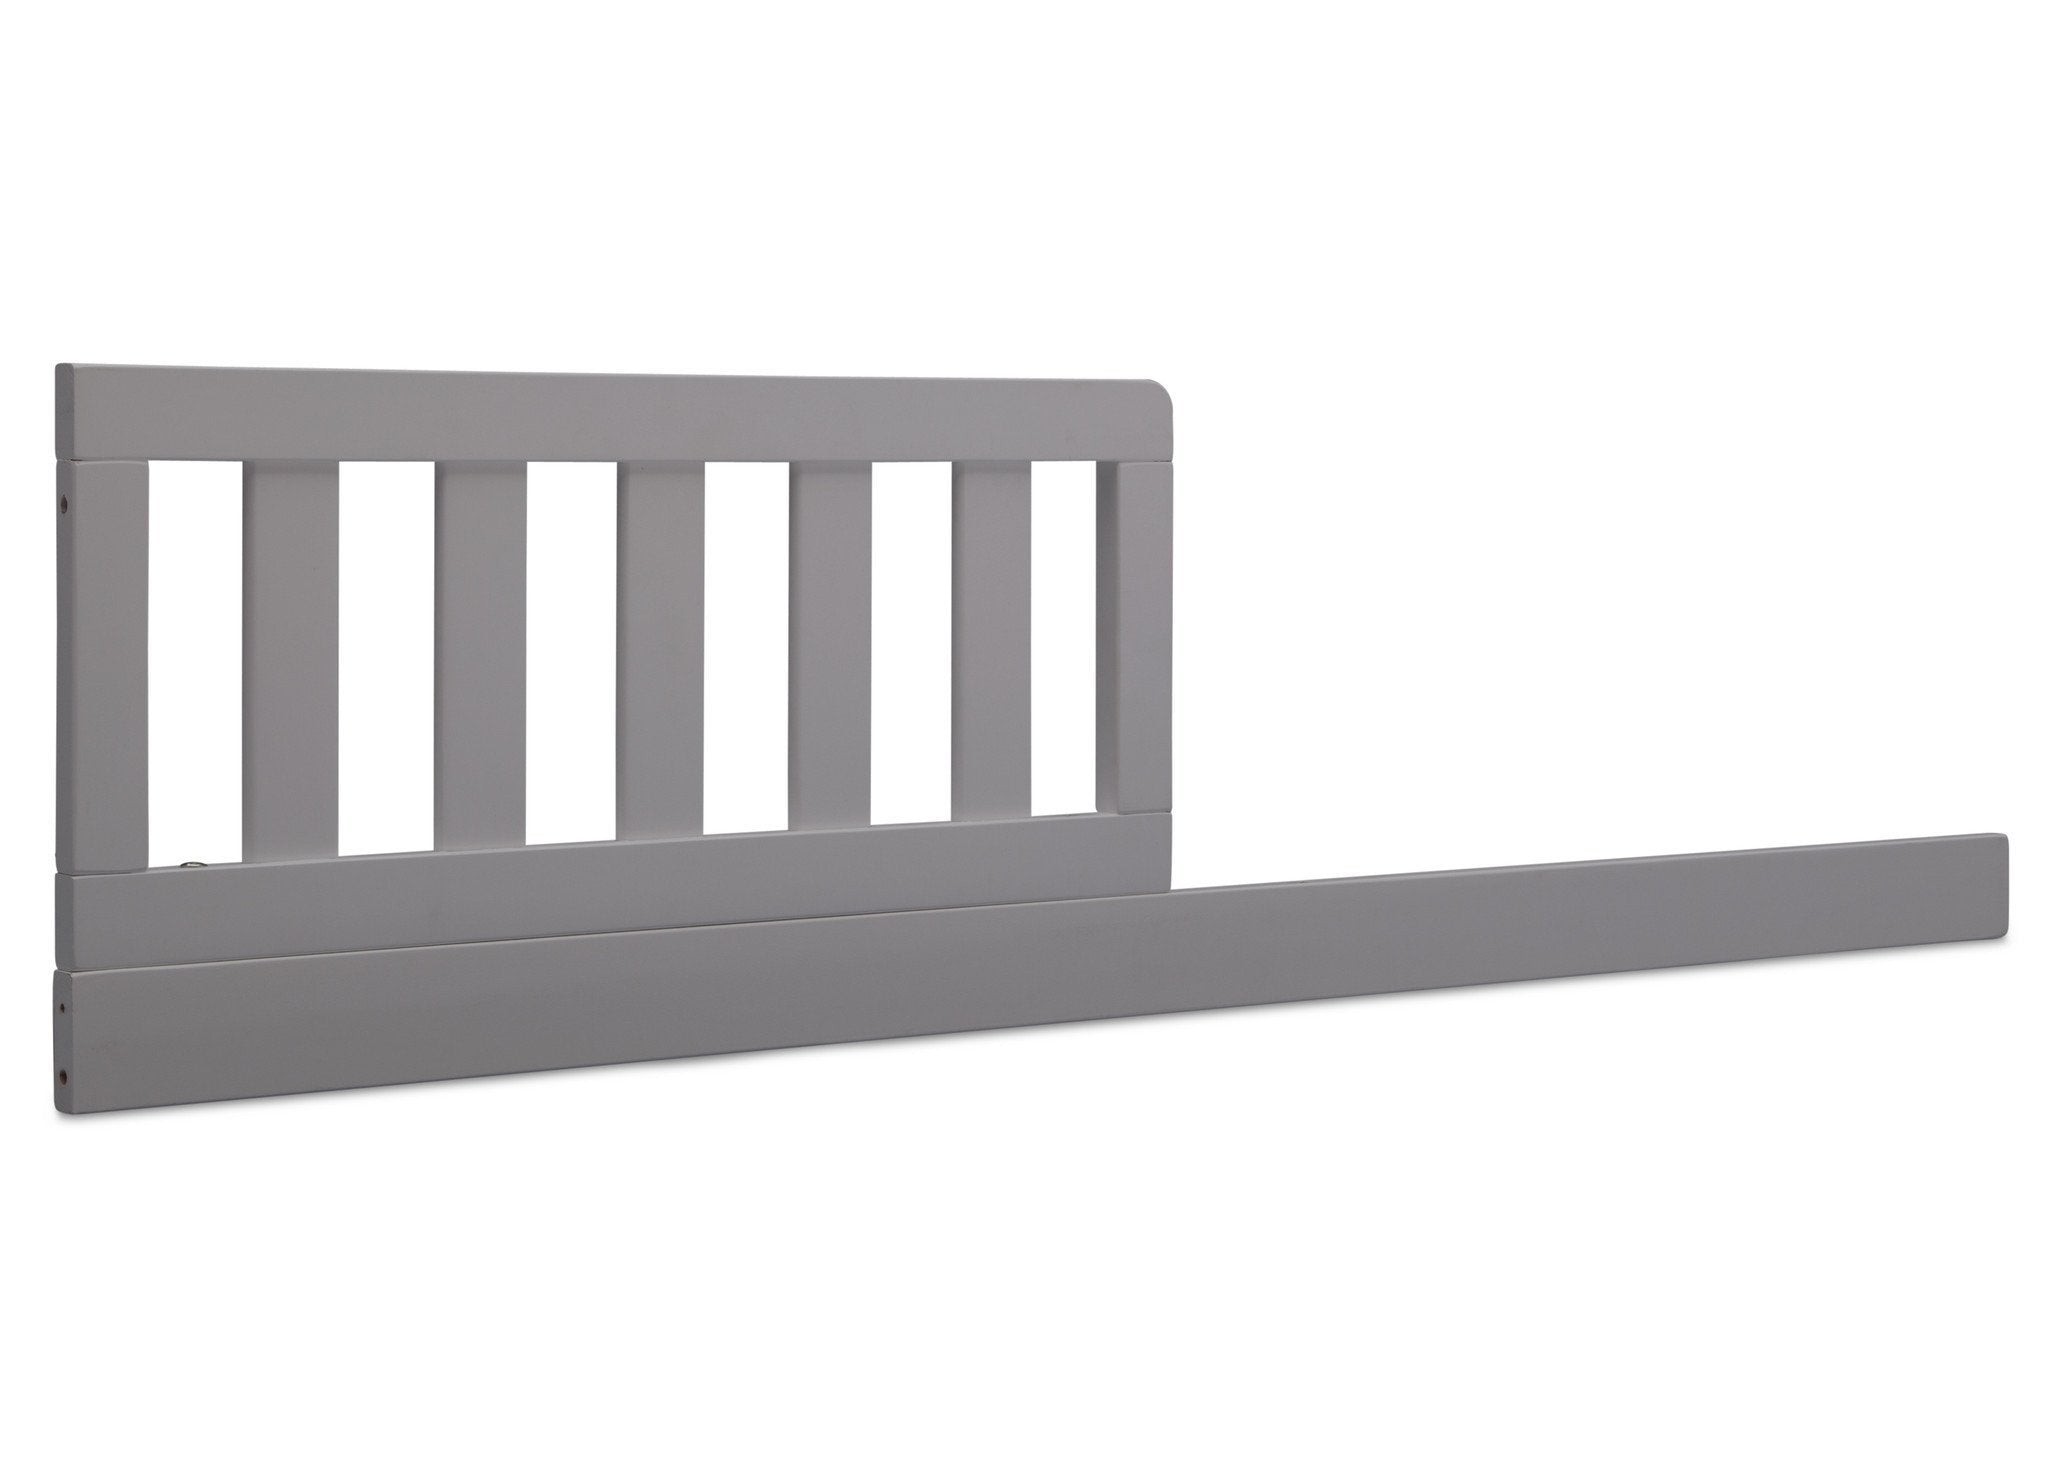 Delta Children Grey (026) Daybed Rail & Toddler Guardrail Kit, Angled View a1a